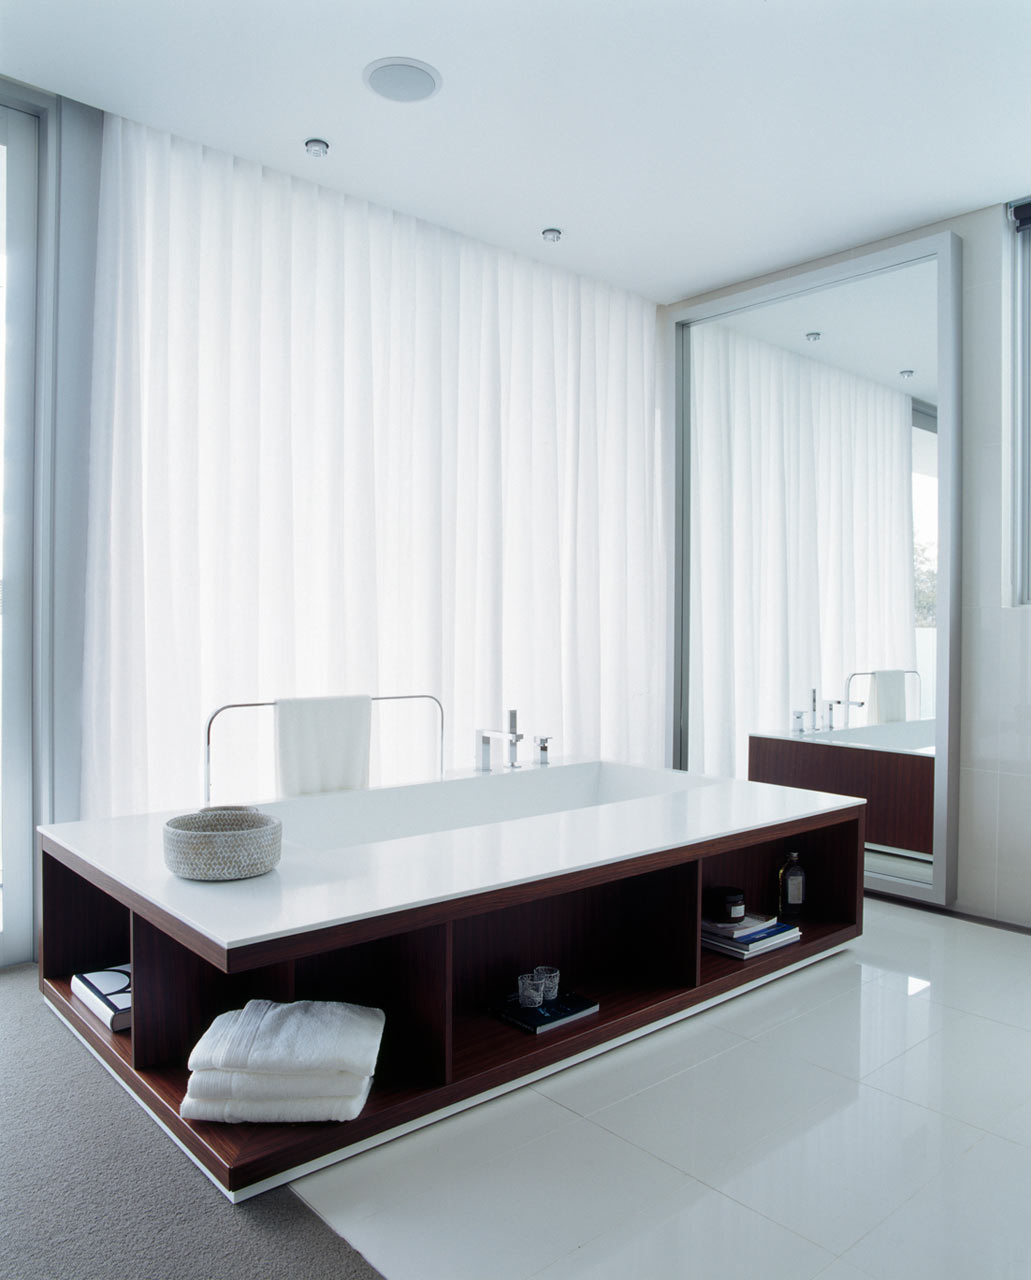 Minosa-Design-Portland-St-15-bathtub